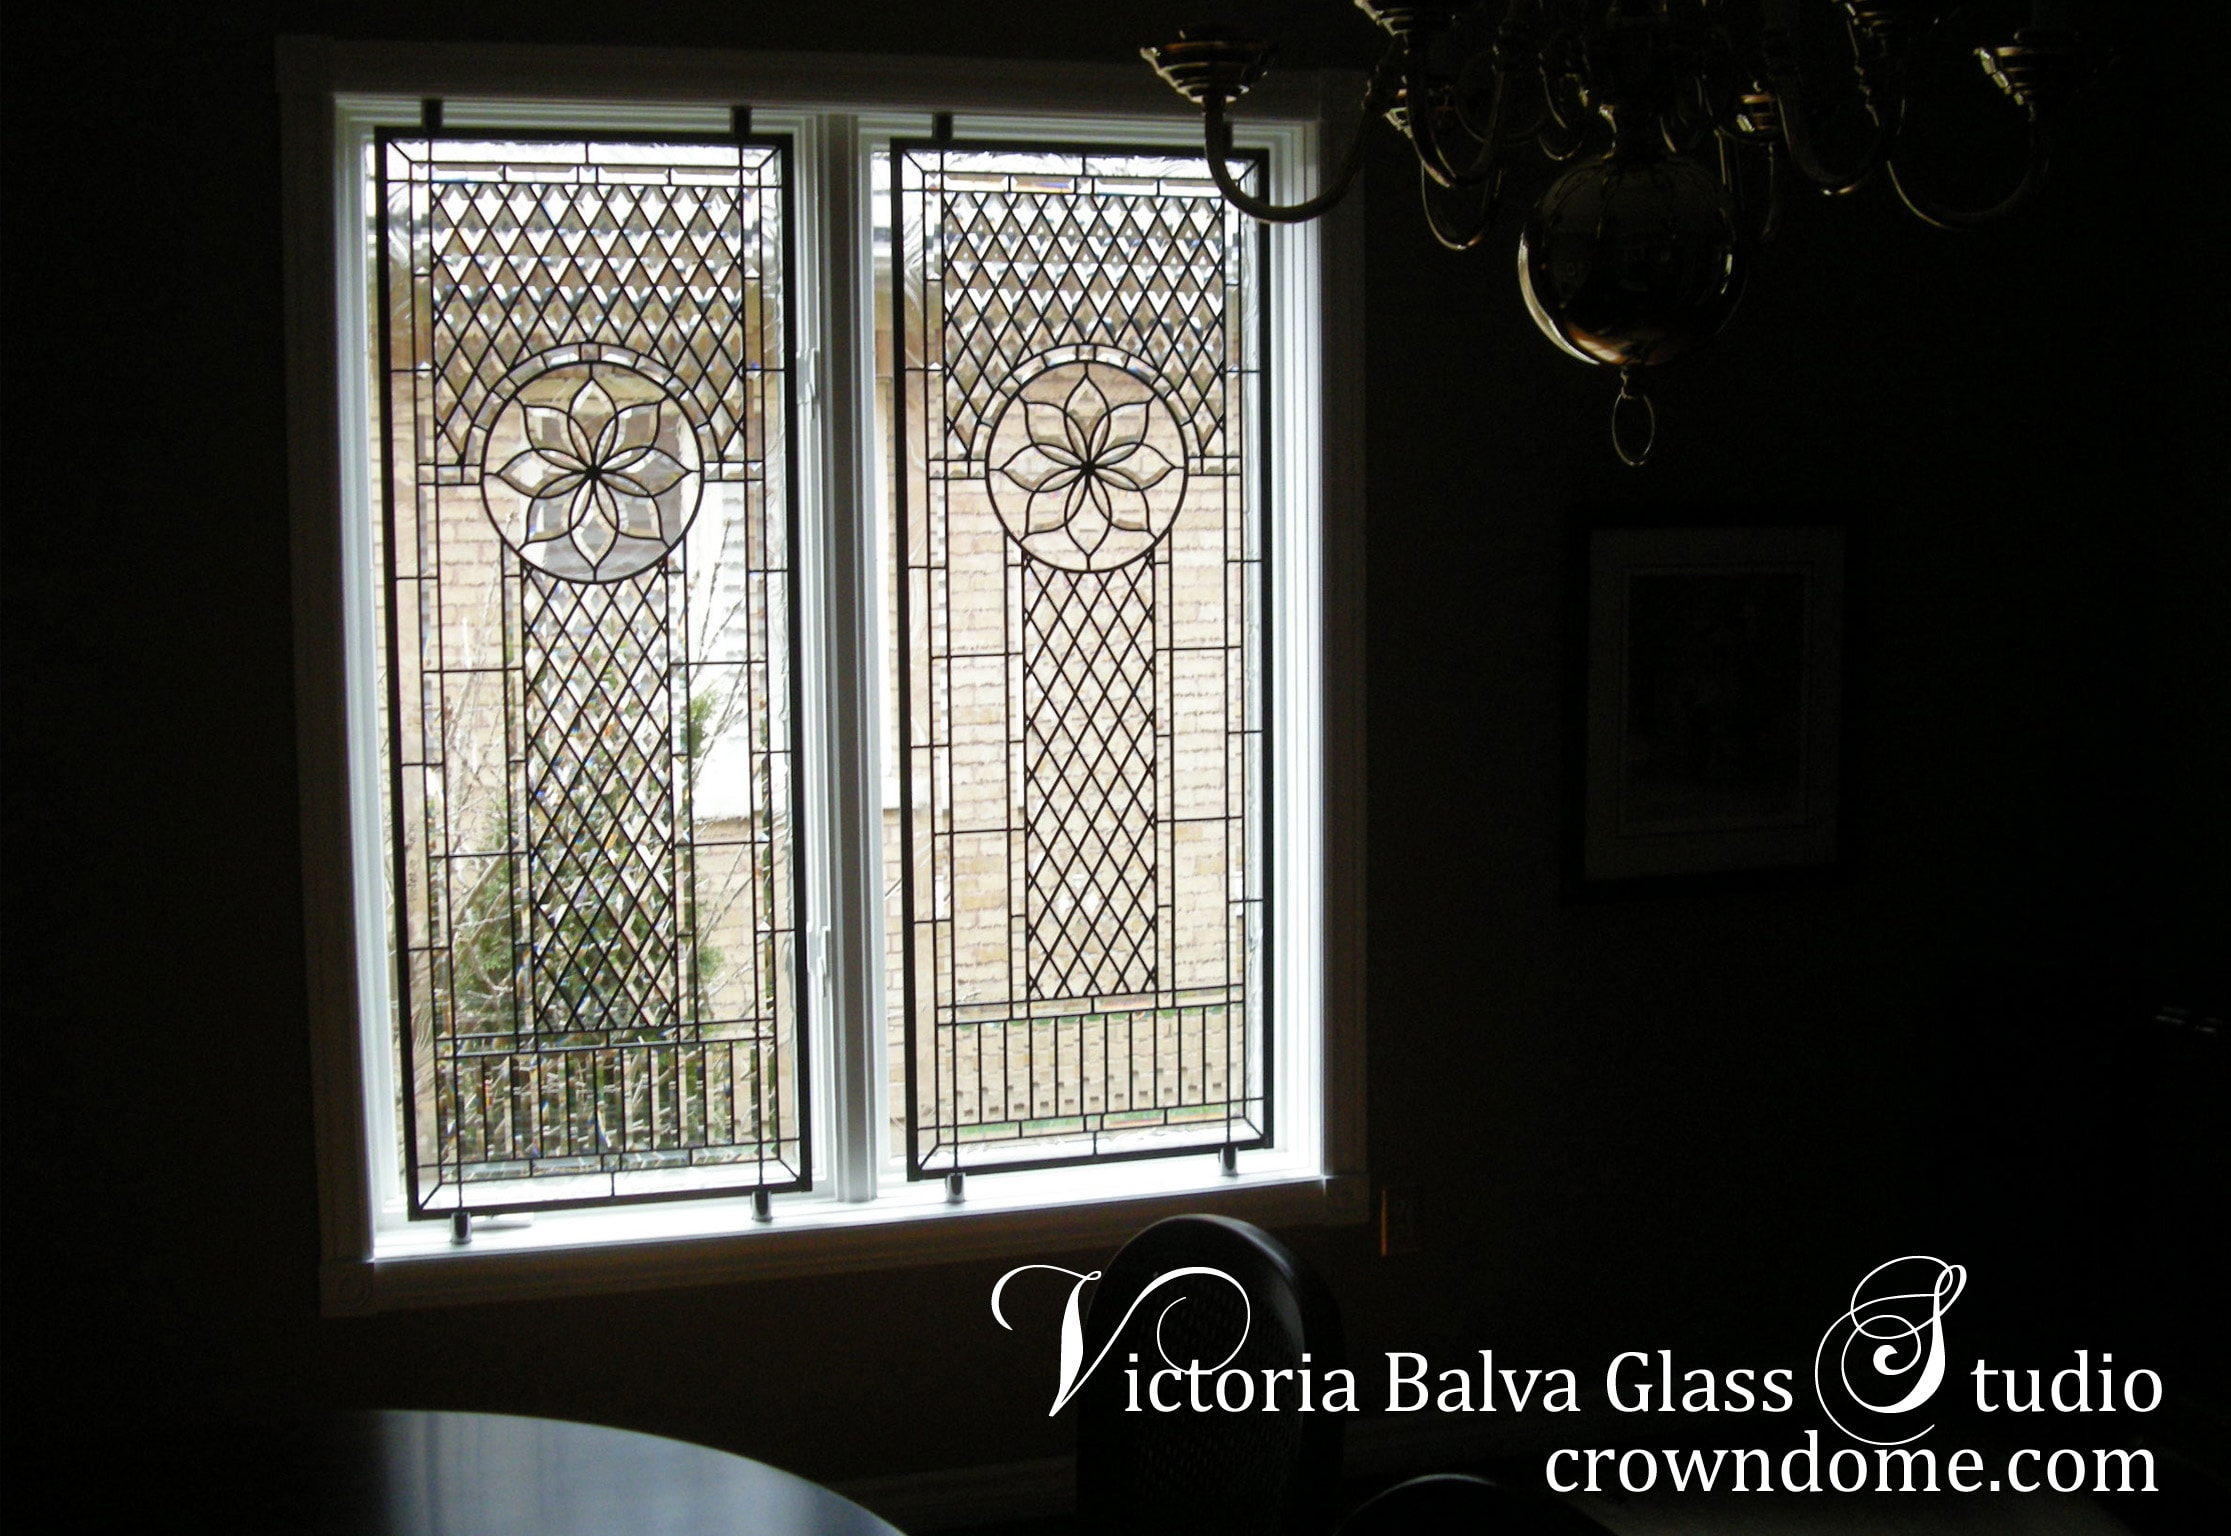 Double classic beveled leaded glass window after installation for a dining room of a private residence to add privacy and beauty to space. Clear beveled glass, textured architectural glass, intricate line work design by stained glass artist Victoria Balva